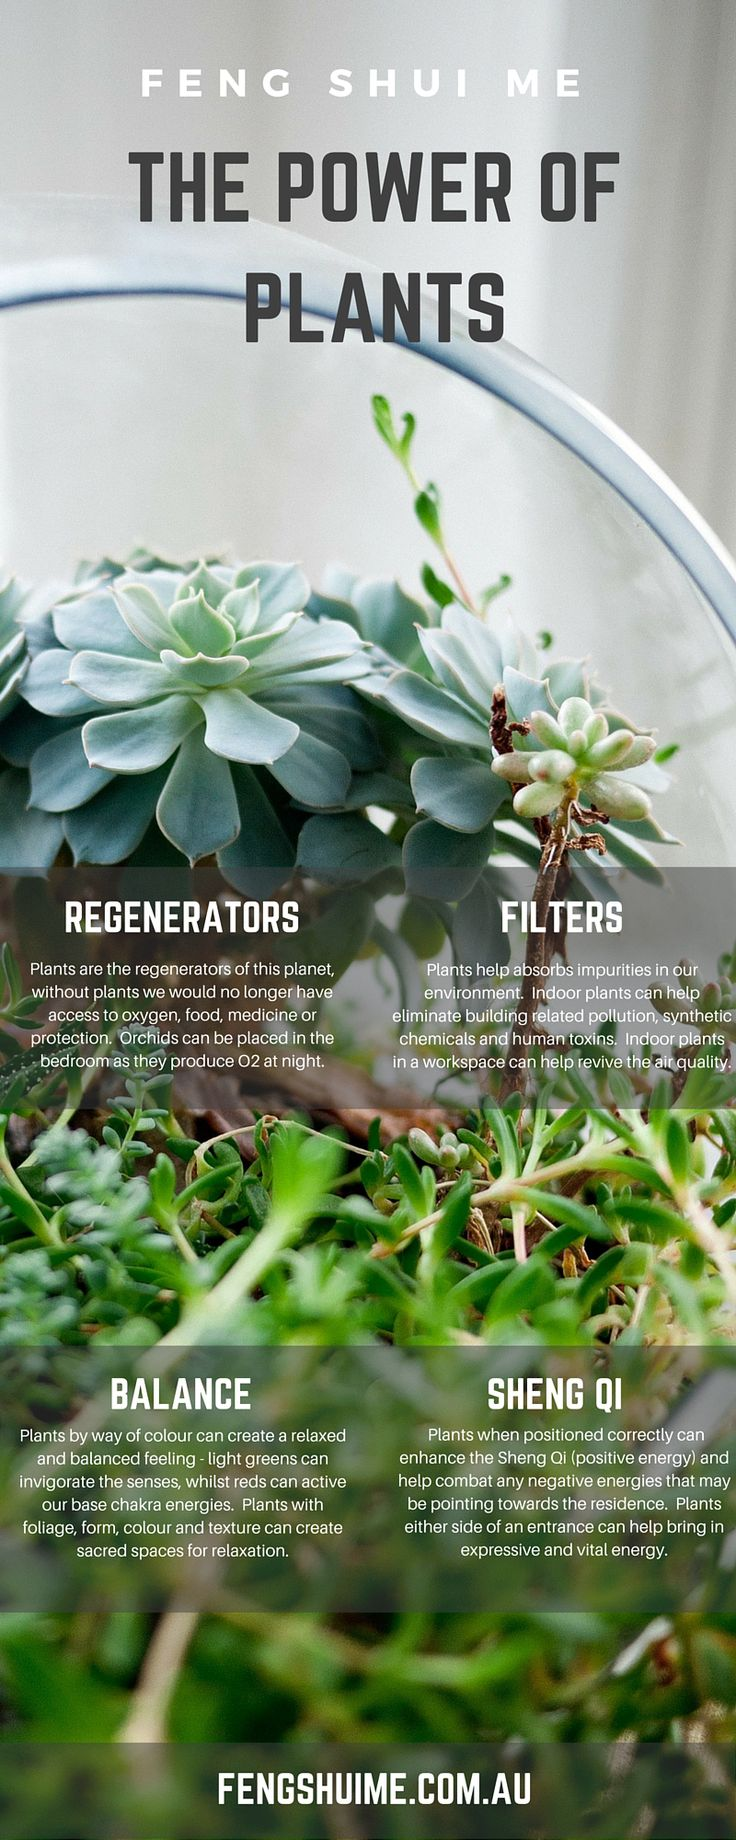 139 best feng shui images on pinterest feng shui tips feng shui the power of plants fengshui